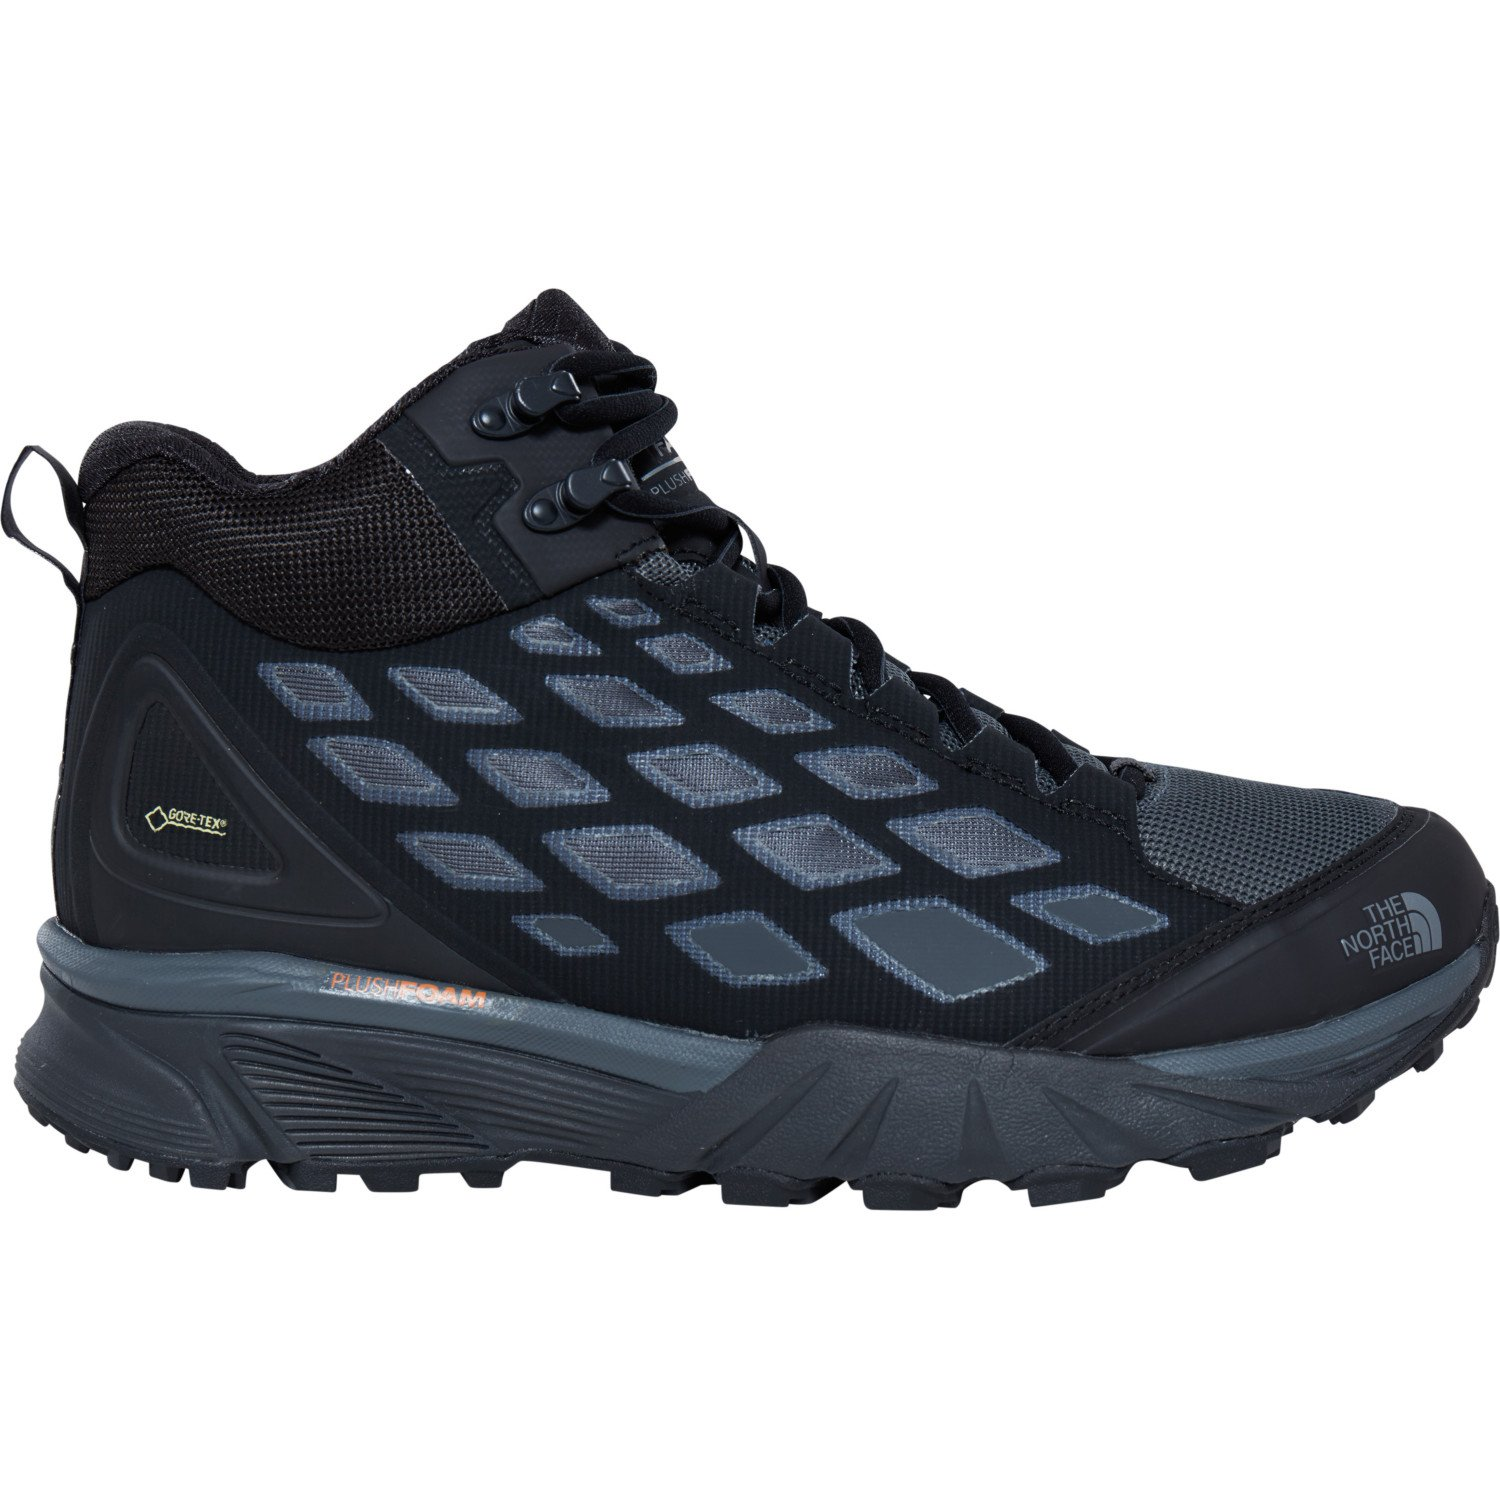 26a2344a3 North Face Endurus Leaves Mid GTX Walking Boots Siyah Size: 40.5 EU ...